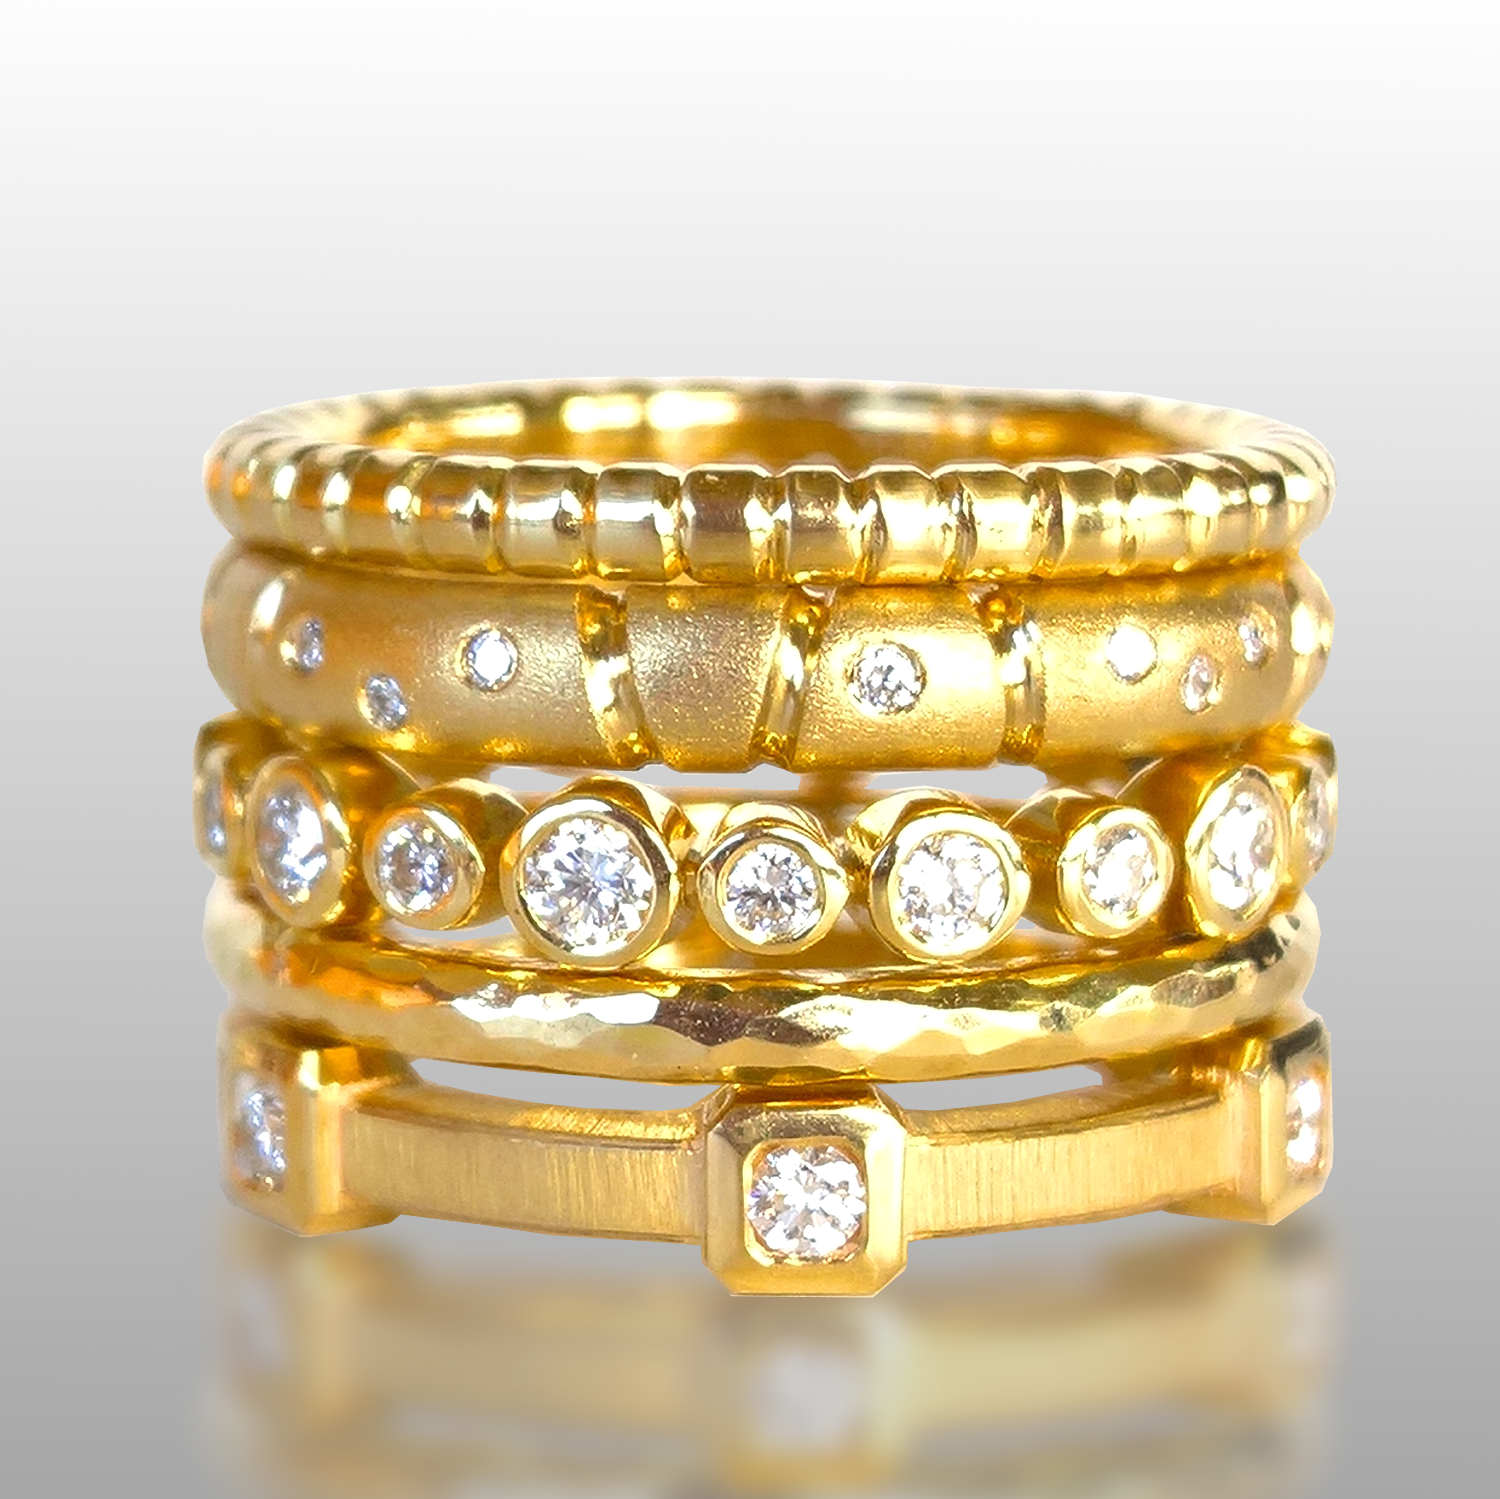 Collectible Diamond Stacking Rings in 22k and 18k Gold from the 'MOMENTI' Collection by Pratima Design Fine Art Jewelry